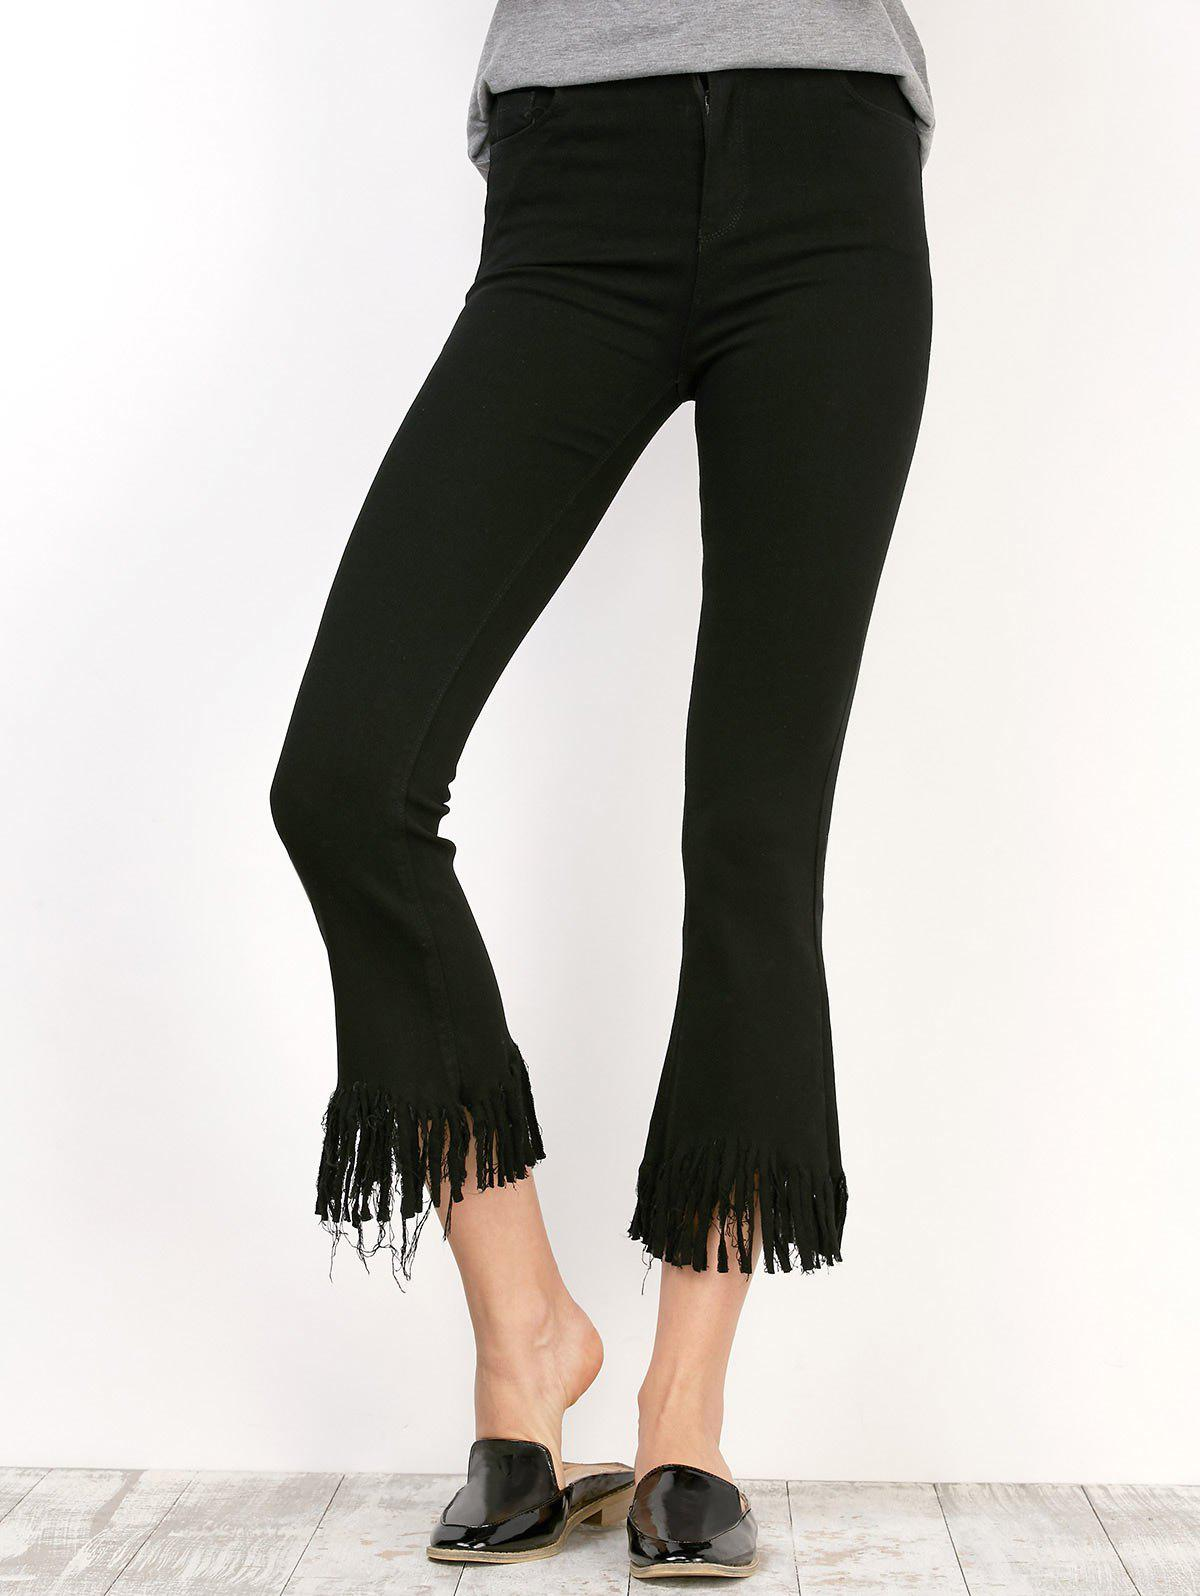 Fringe Cropped Frayed Bell Bottom Stretchy Pants - BLACK XL